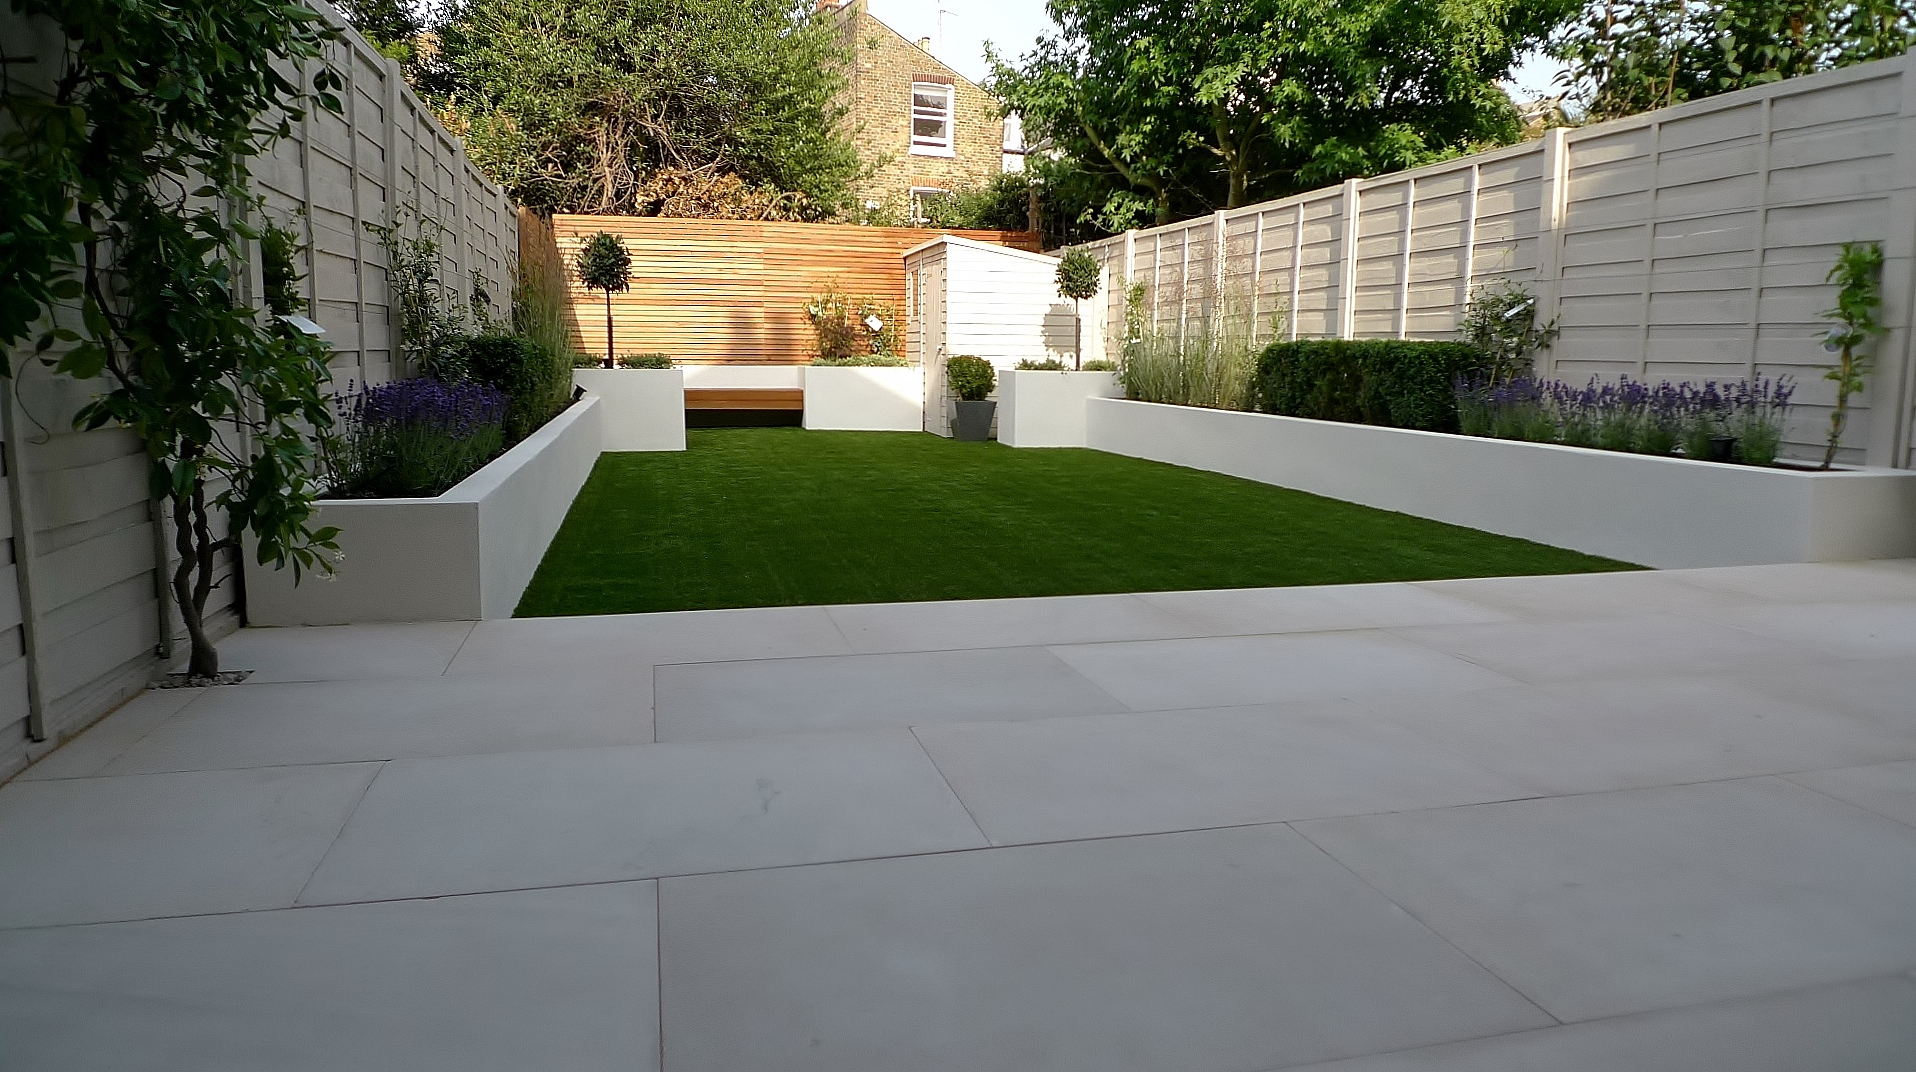 Modern balham garden design london garden design for Garden designs for small gardens uk